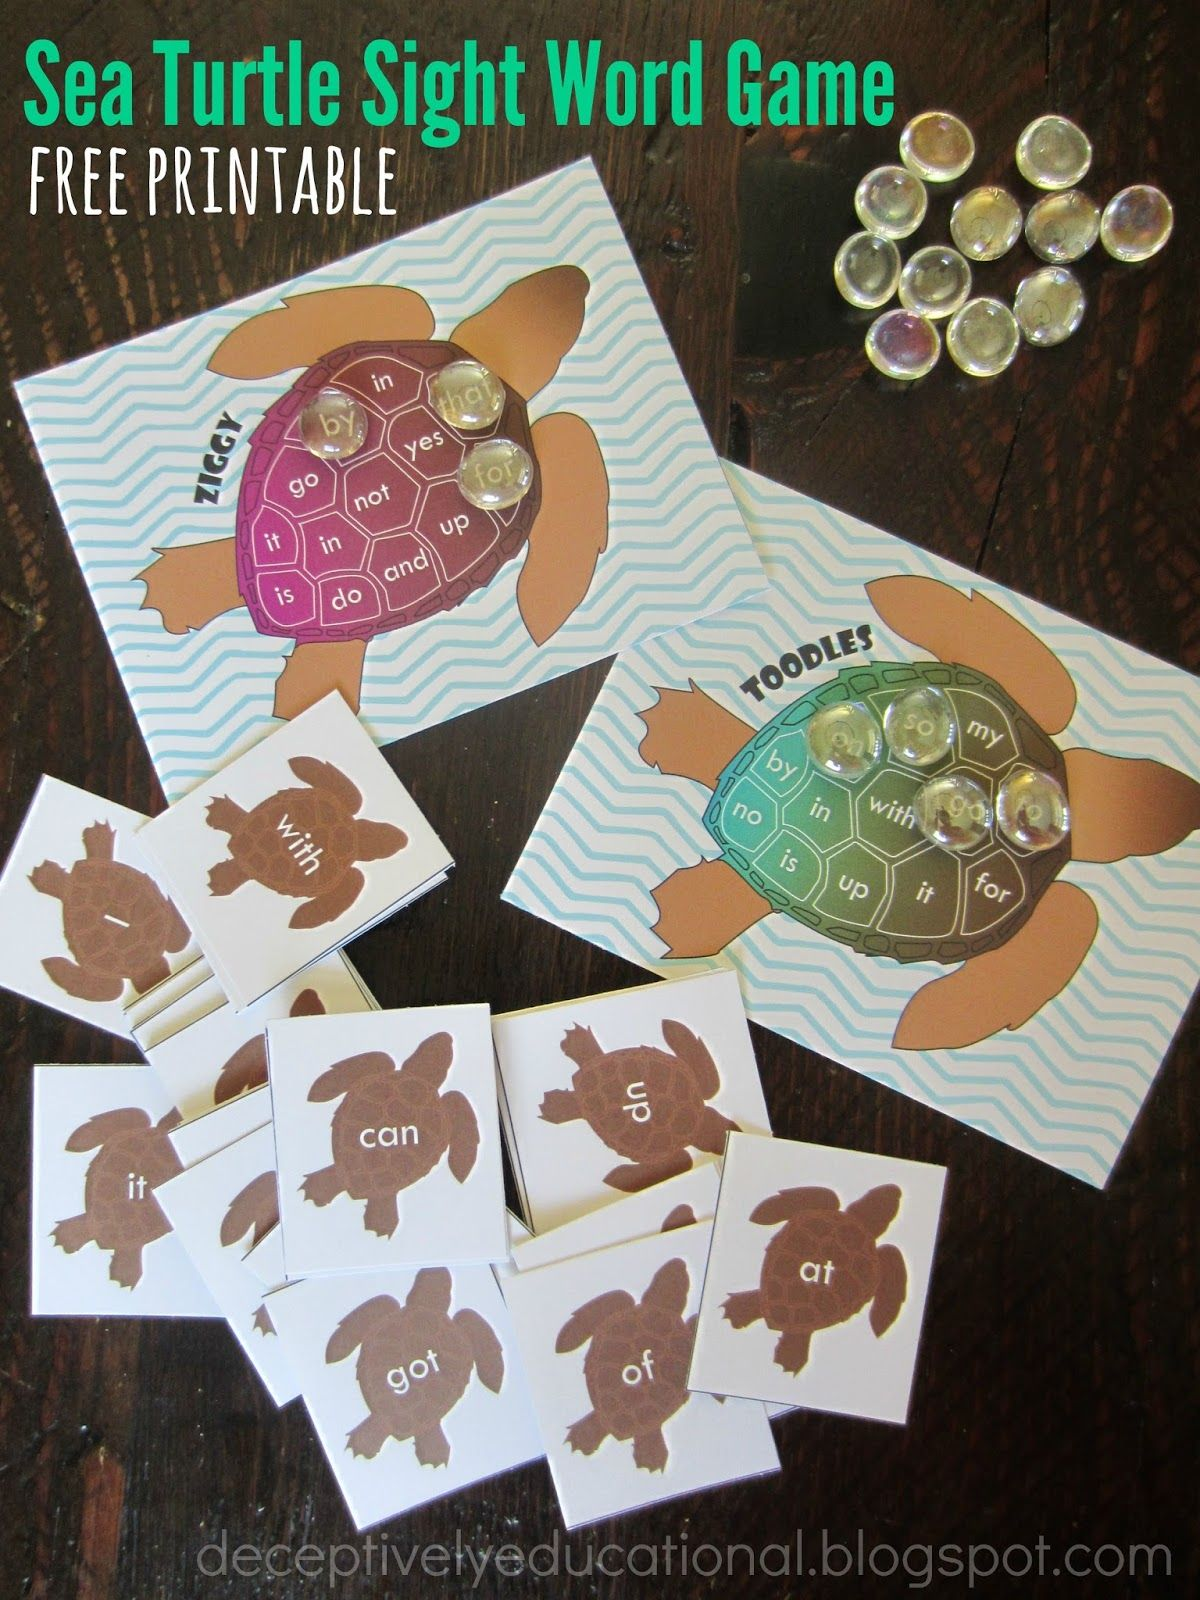 Relentlessly Fun Deceptively Educational Sea Turtle Sight Words Game Free Printable